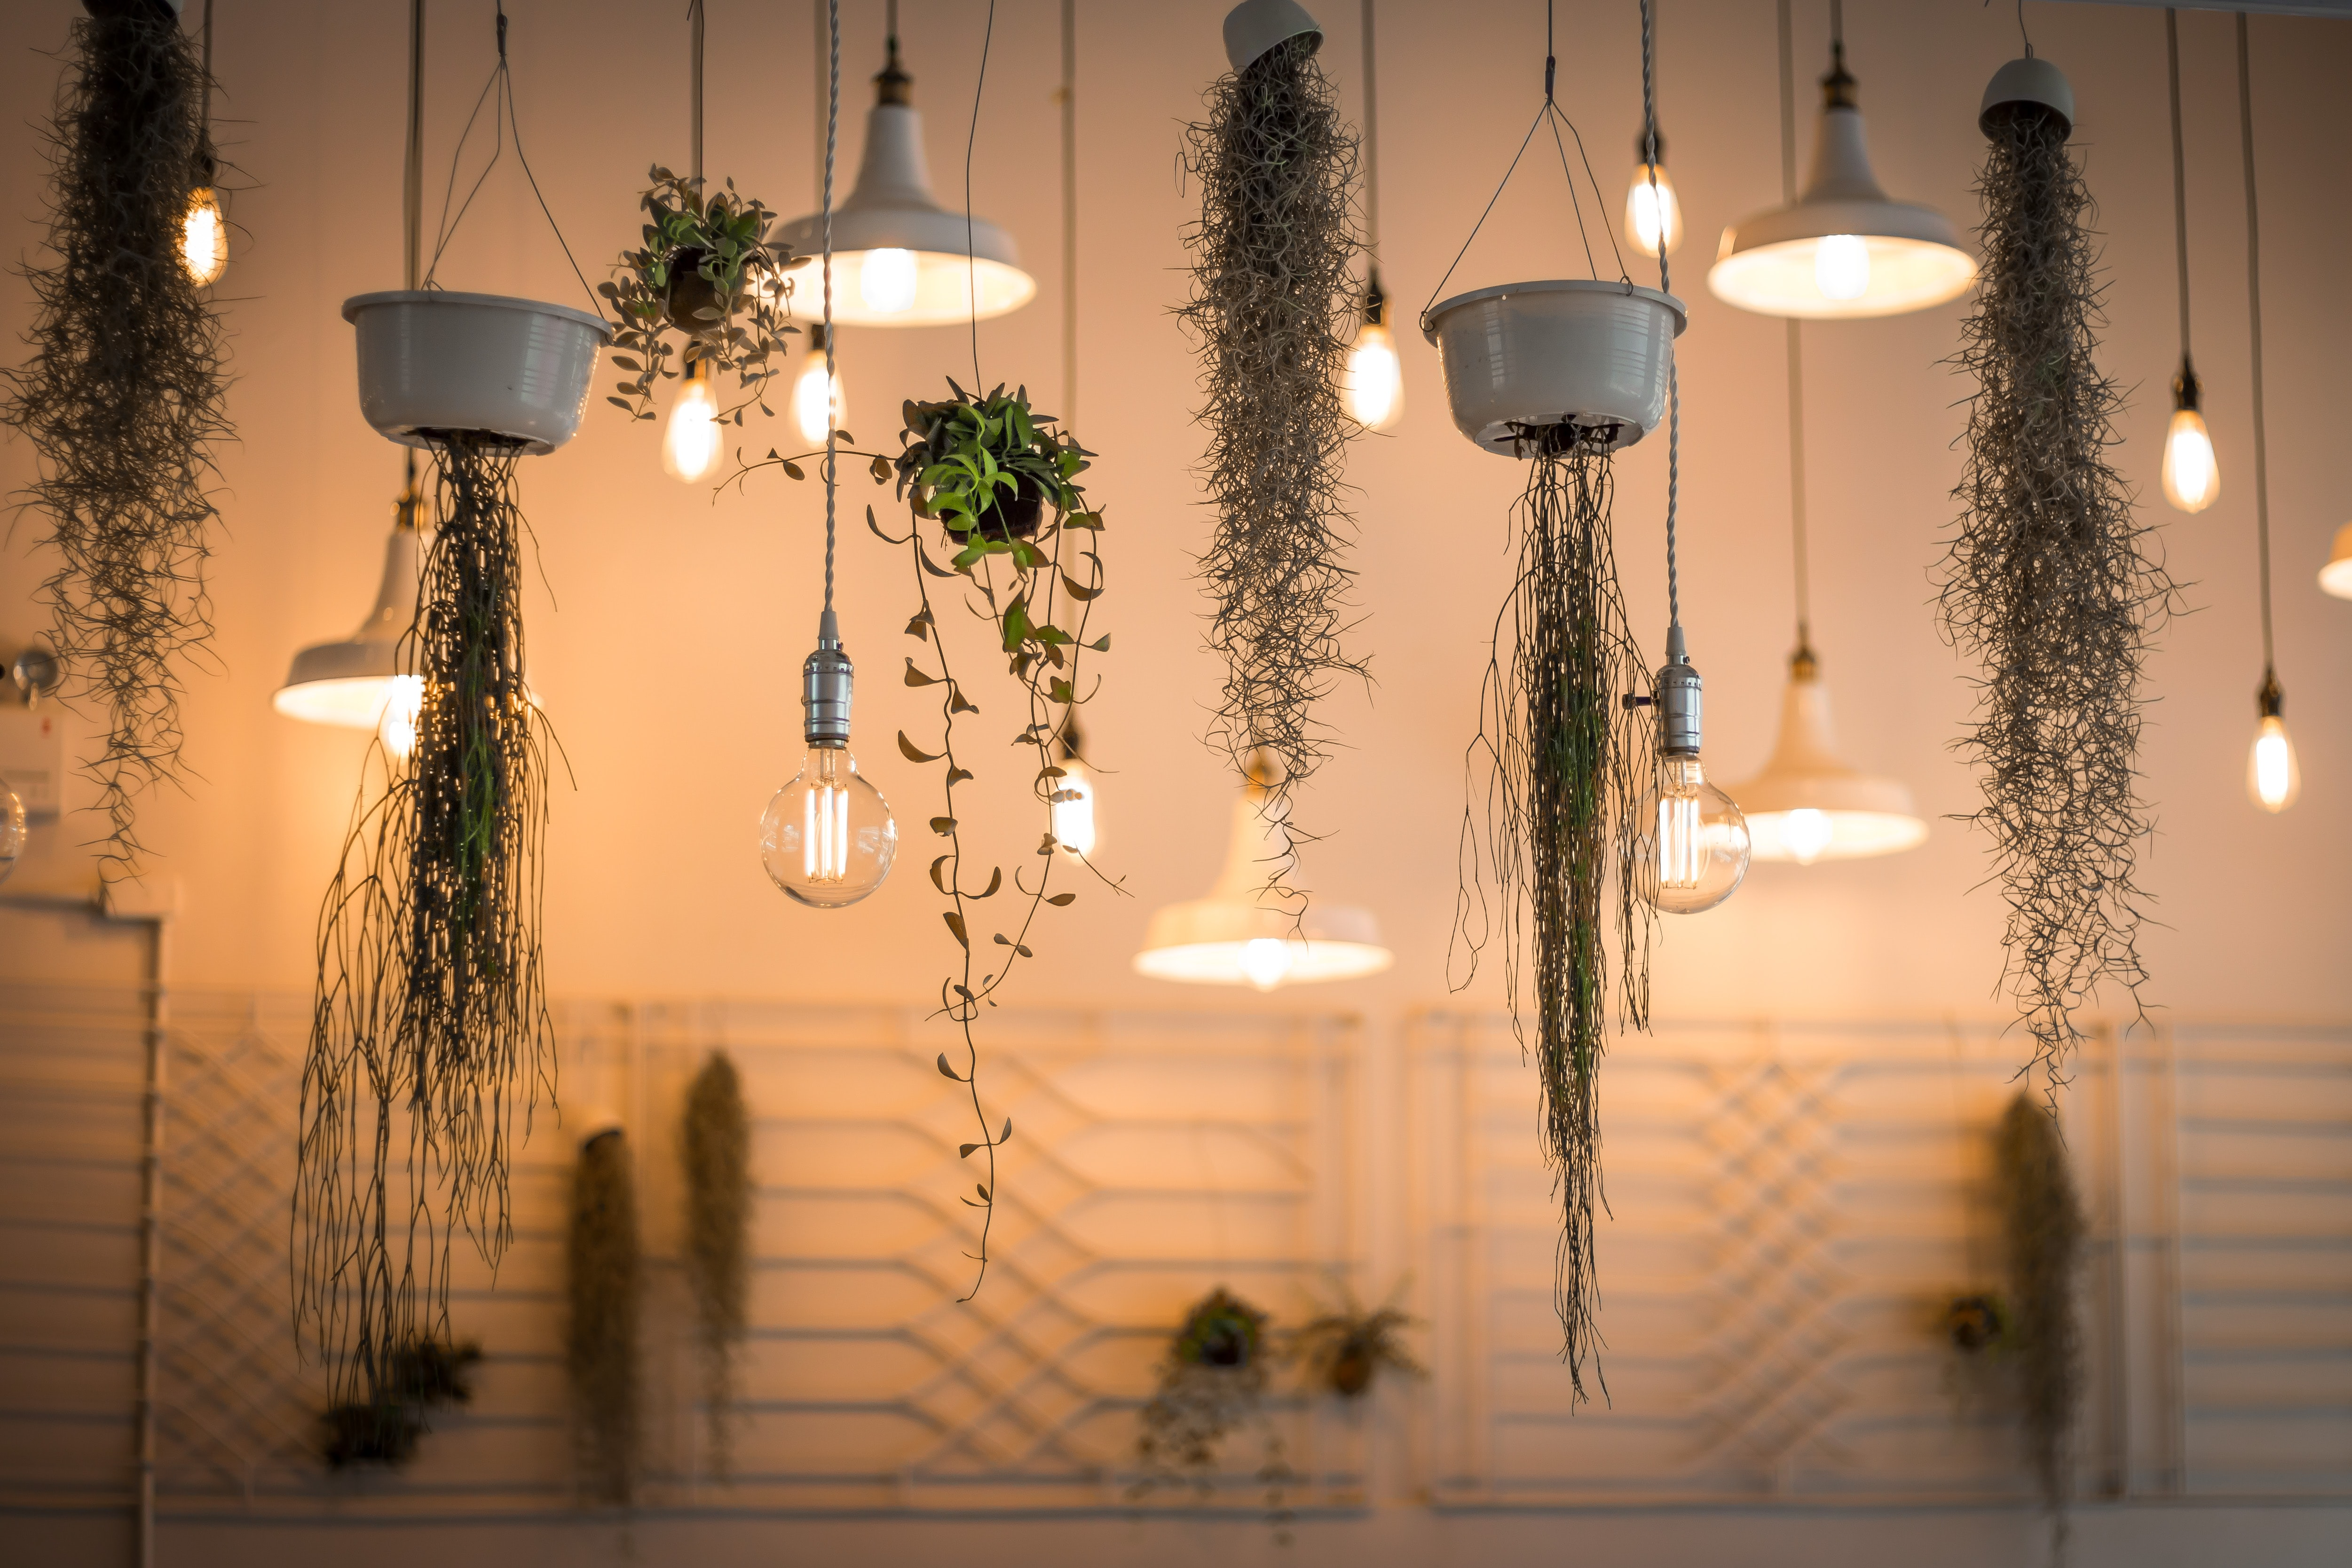 Vines and light bulbs suspended from a ceiling in a room in Bangkok